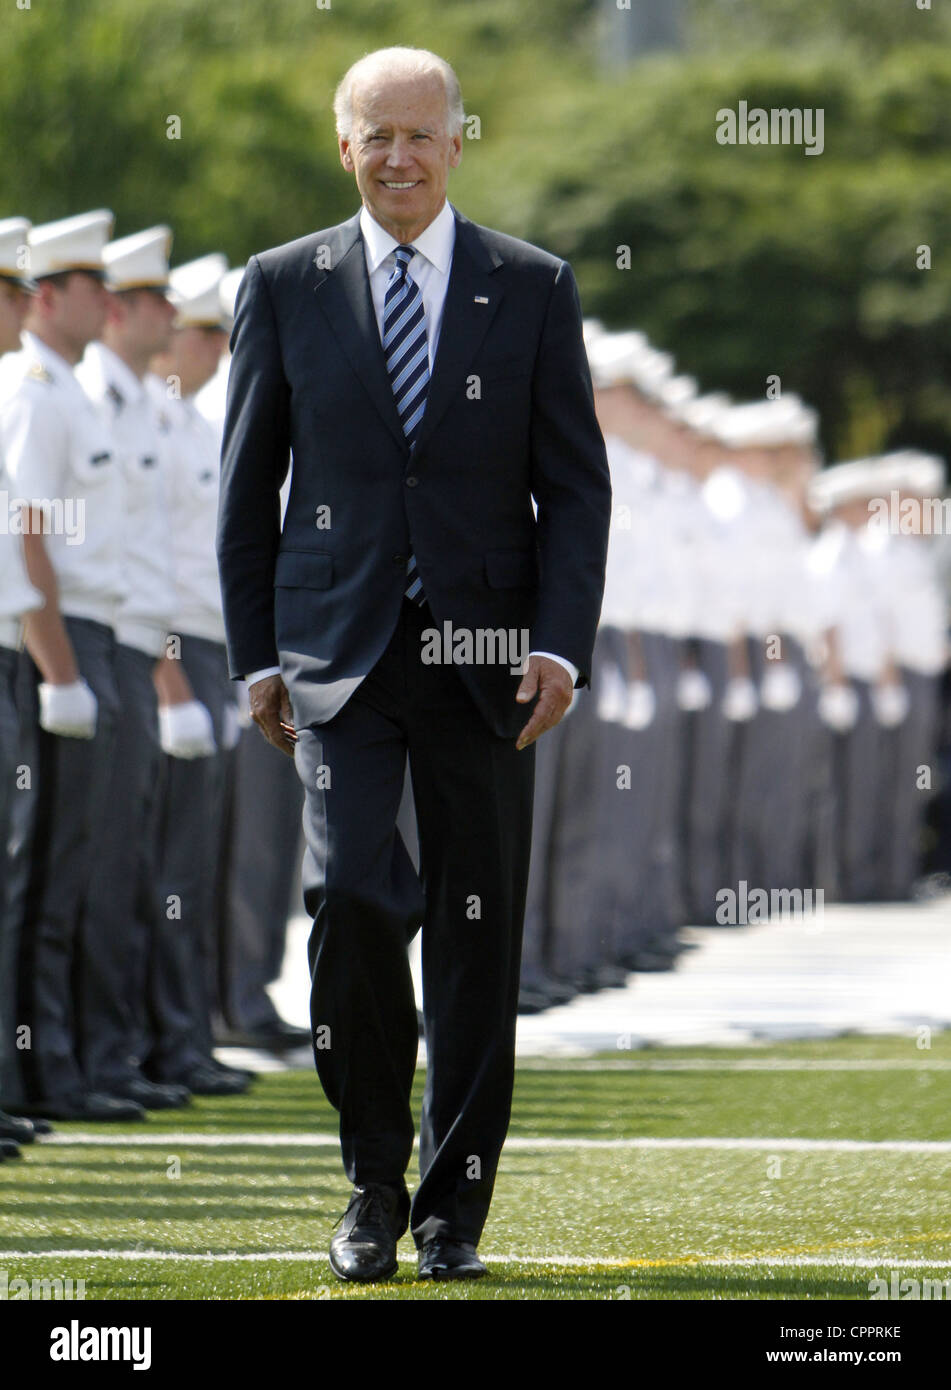 Vice President Joe Biden reviews the troops during graduation ceremonies at the US Military Academy May 26, 2012 - Stock Image